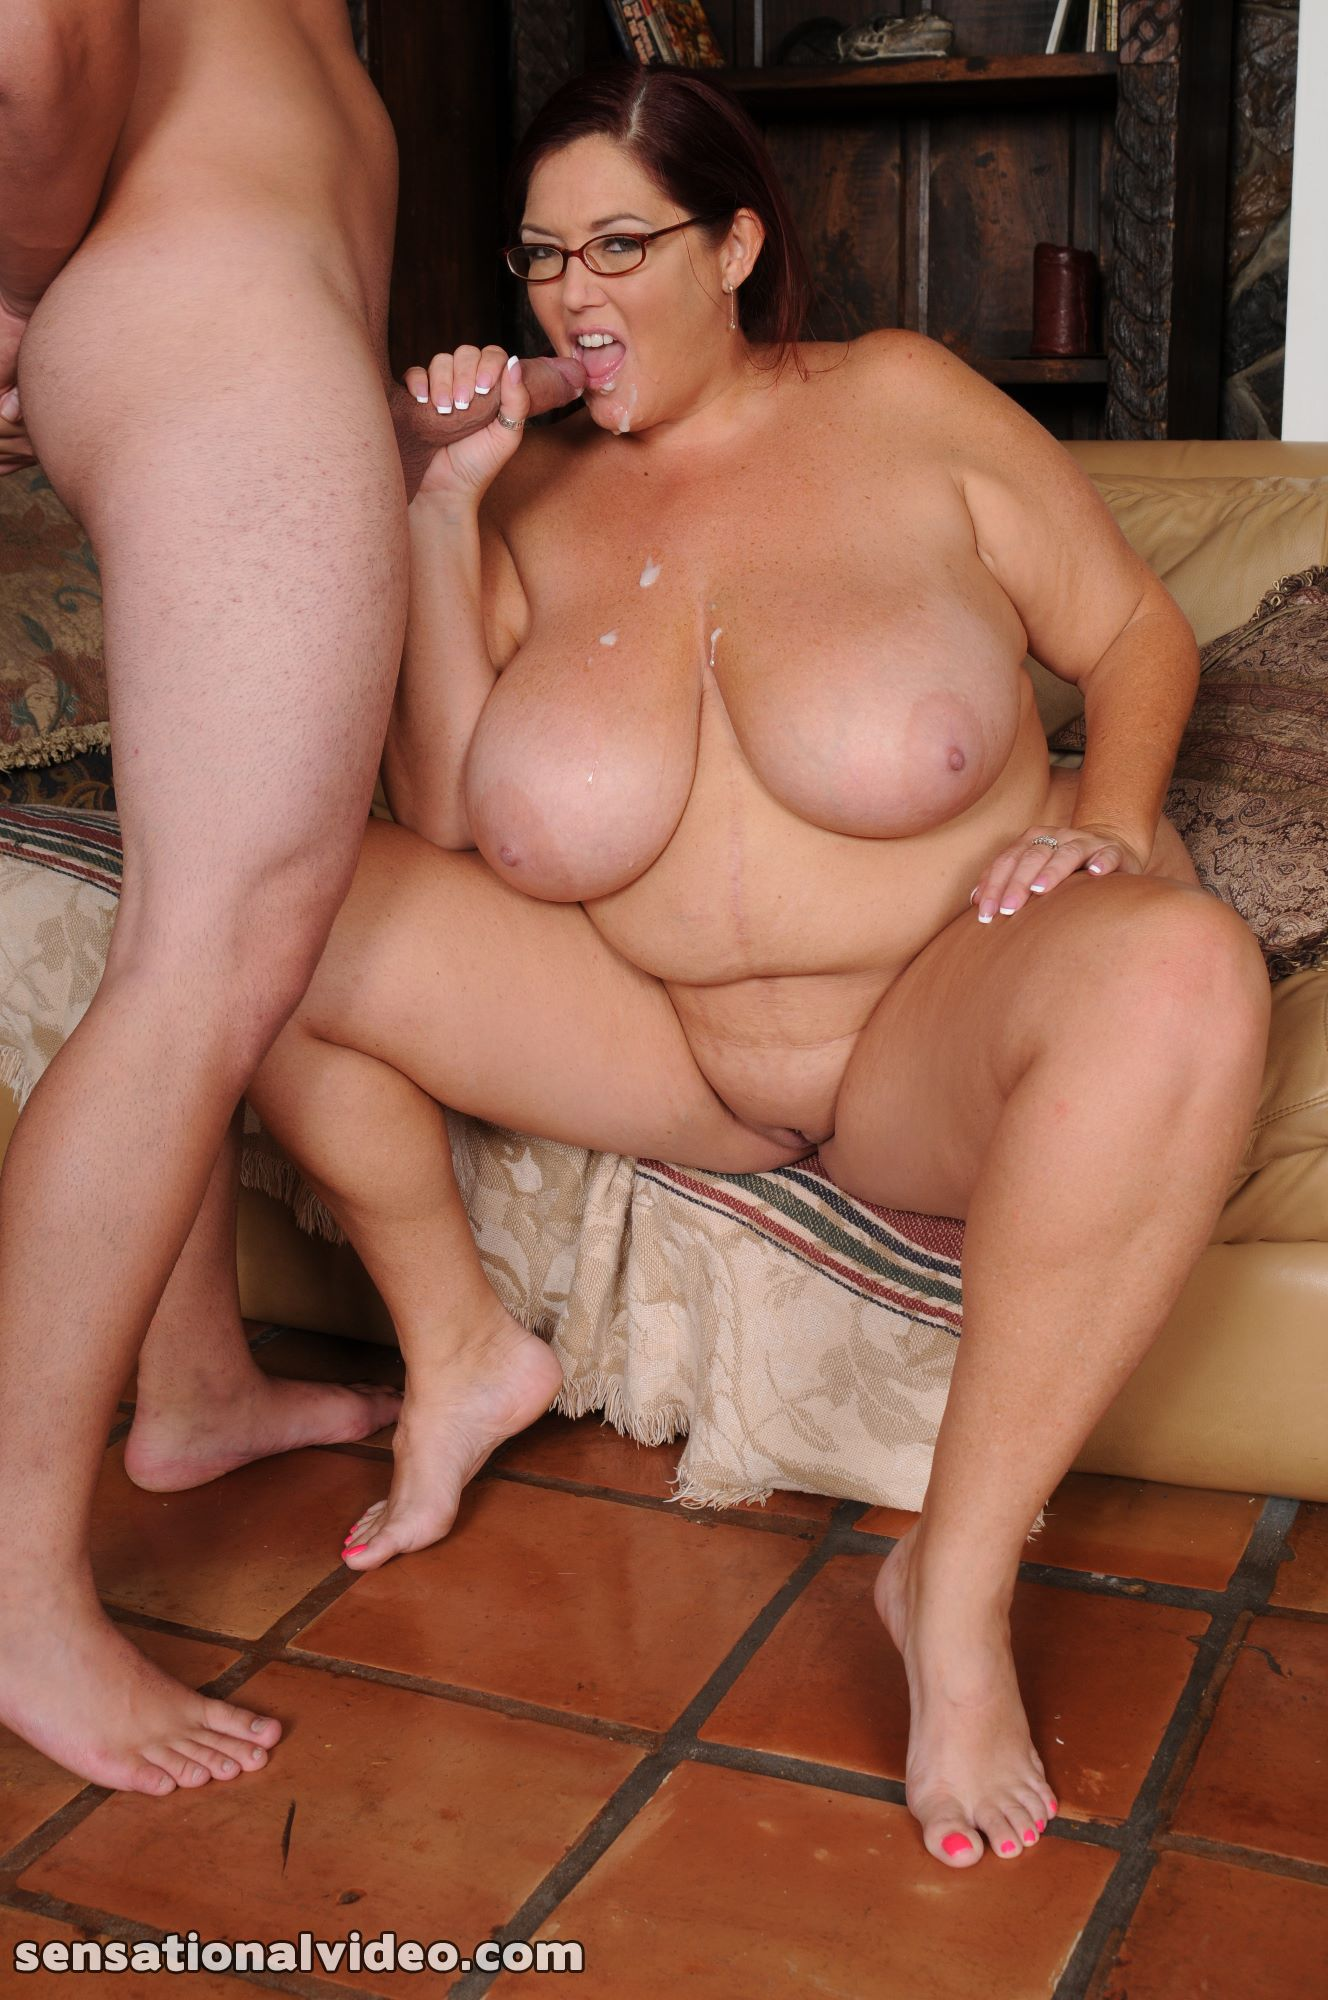 lesgalls spicytitties plumperpass gal553 pic 15